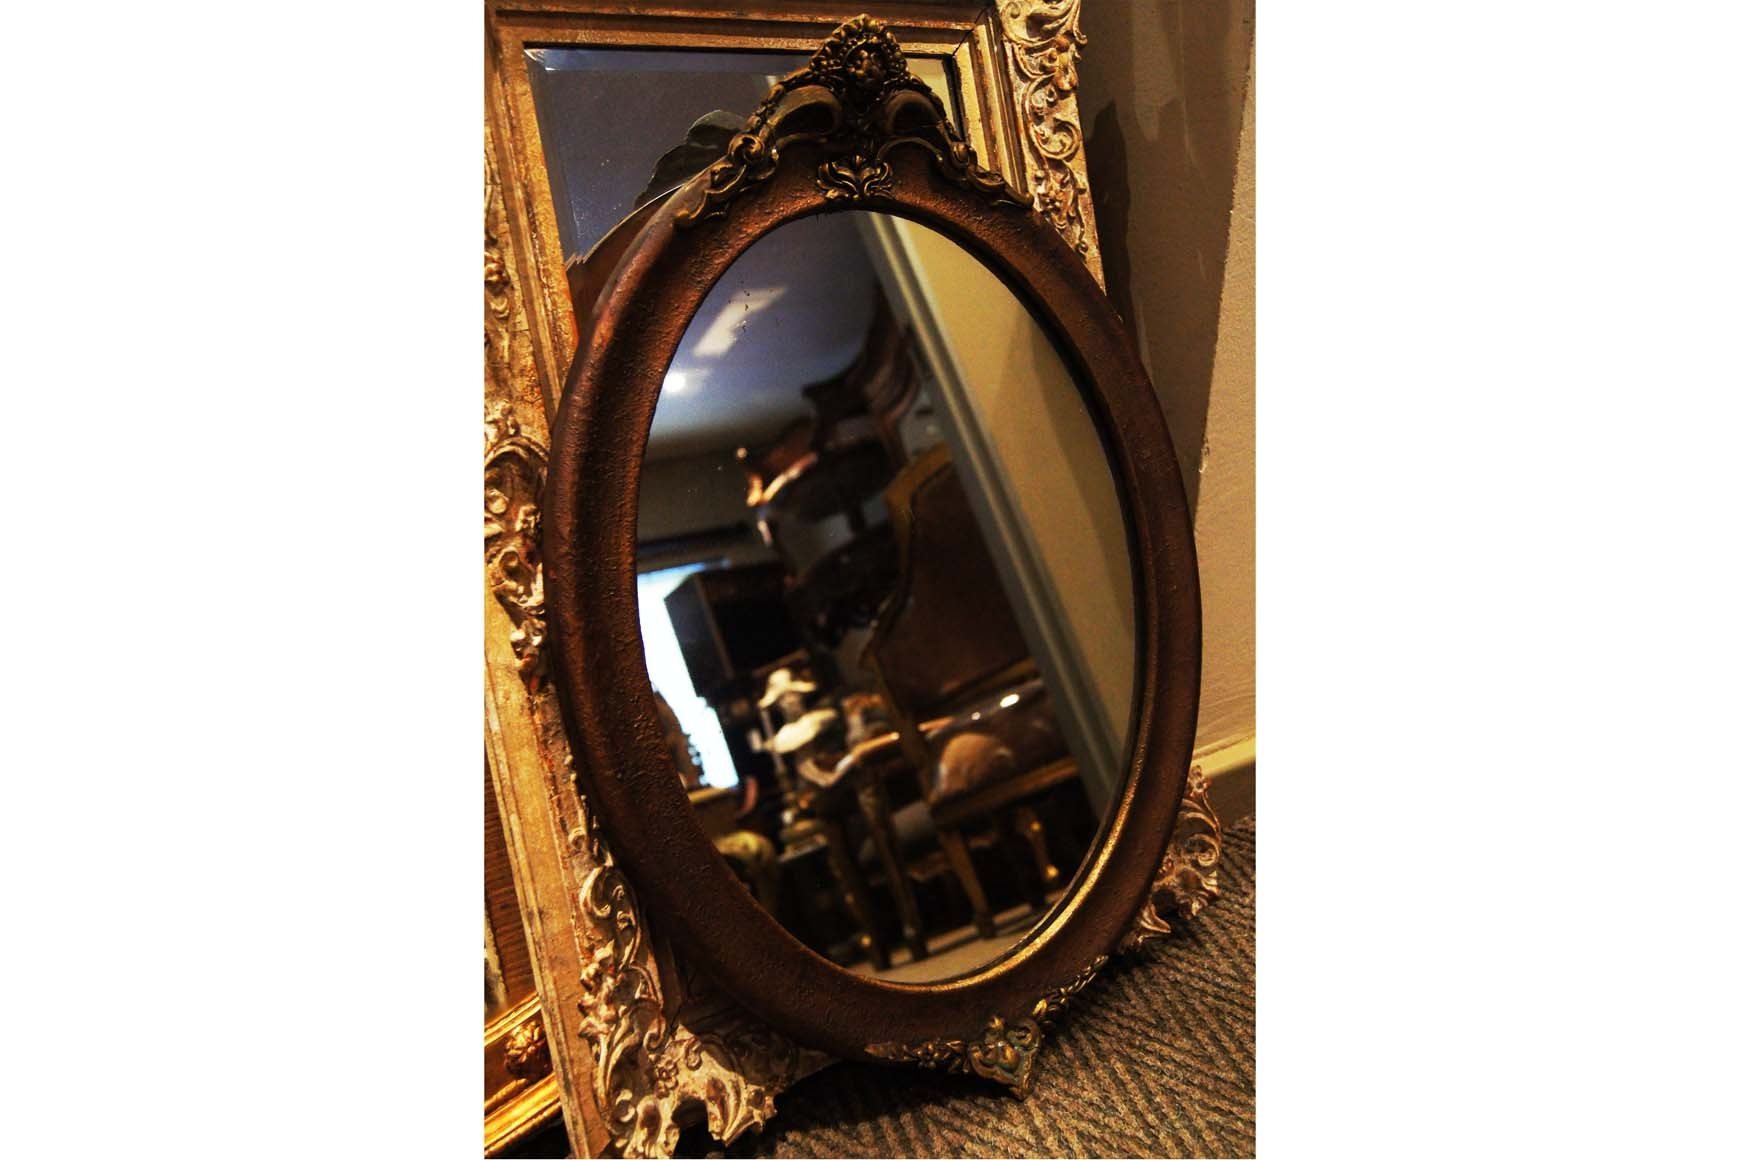 Antique Gilt Framed Mirror Ziora Throughout Gilt Framed Mirrors (Image 7 of 15)